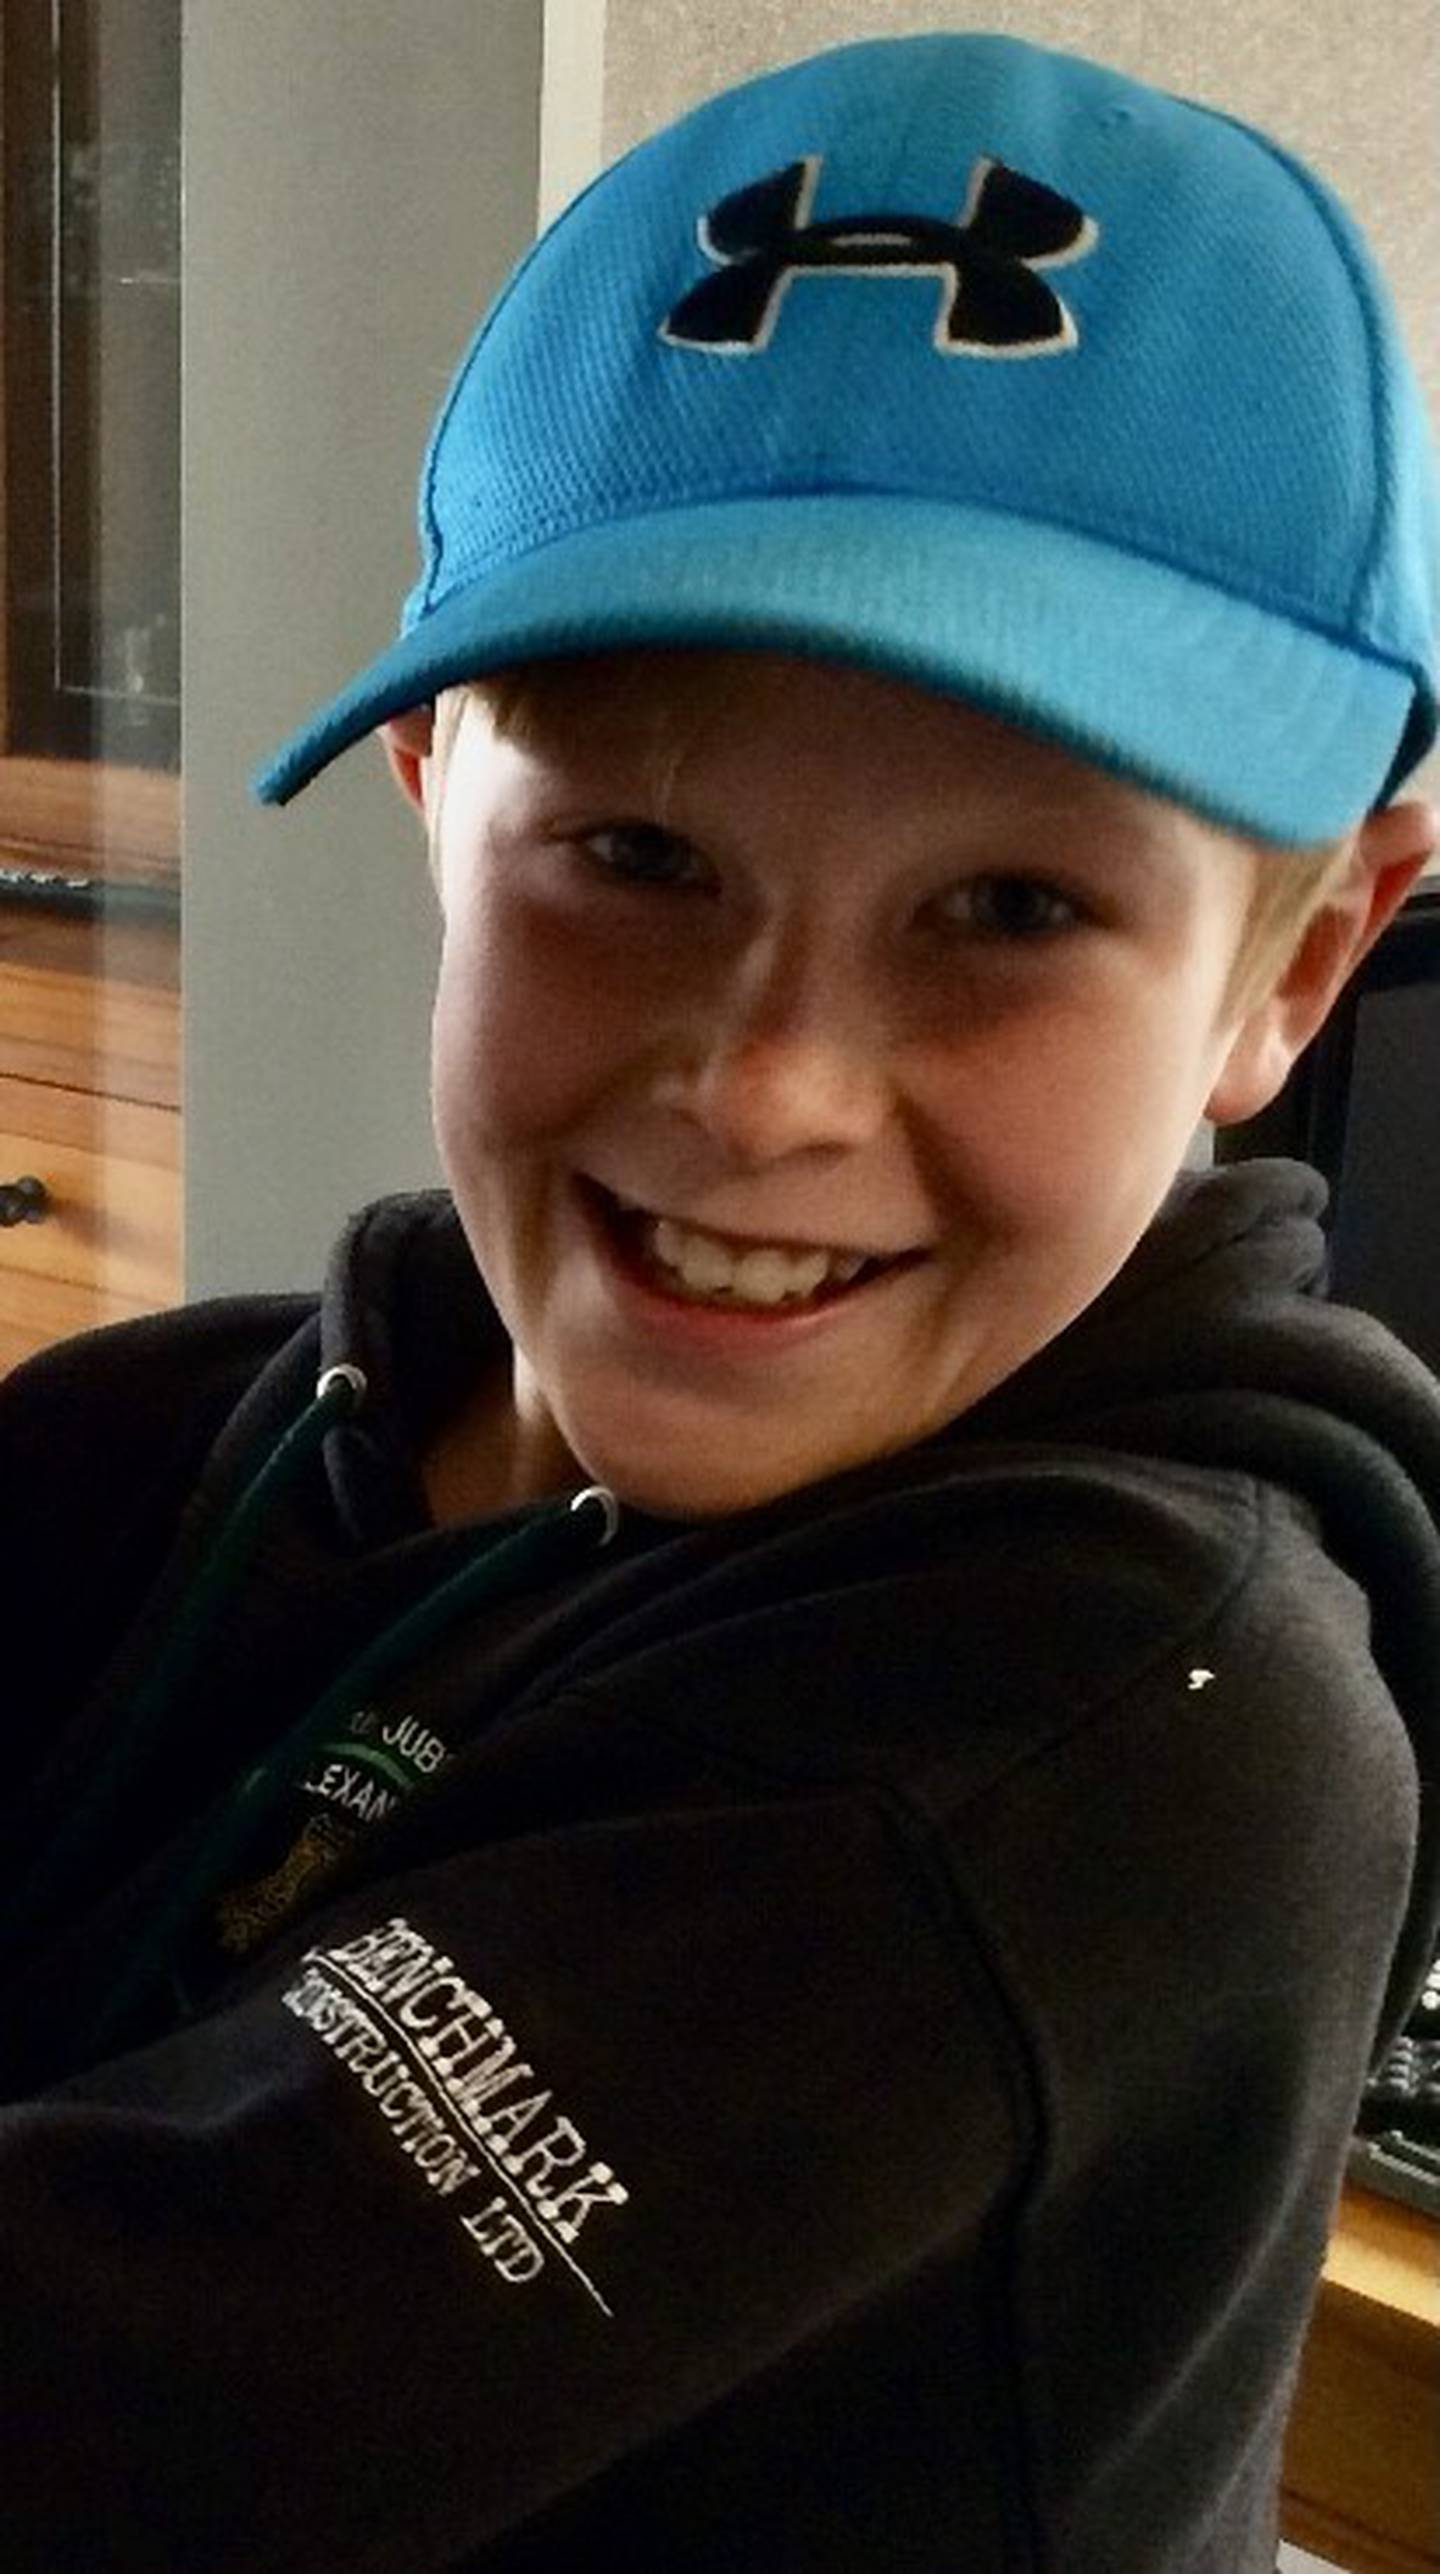 Jesse Samuel died from carbon monoxide poisoning in a gas-powered shower. Photo: Supplied